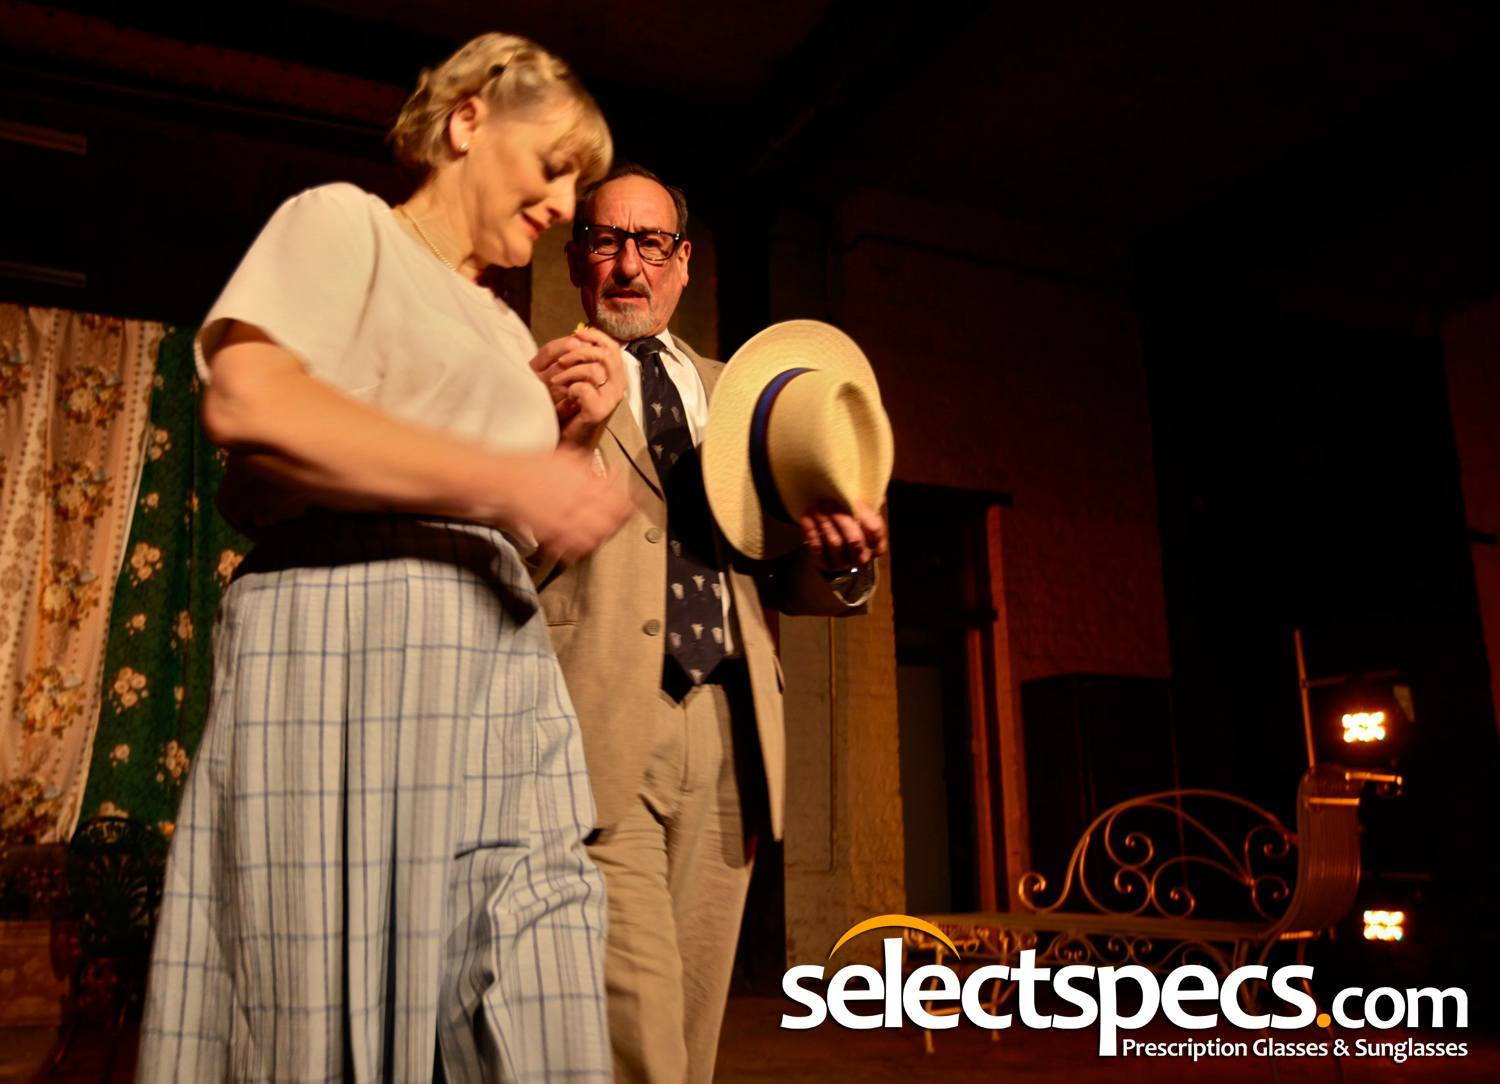 SelectSpecs Eyewear - The Savannah P2383 Wayfarer Style Glasses featured in The Seagull At The Theatre Royal, Margate